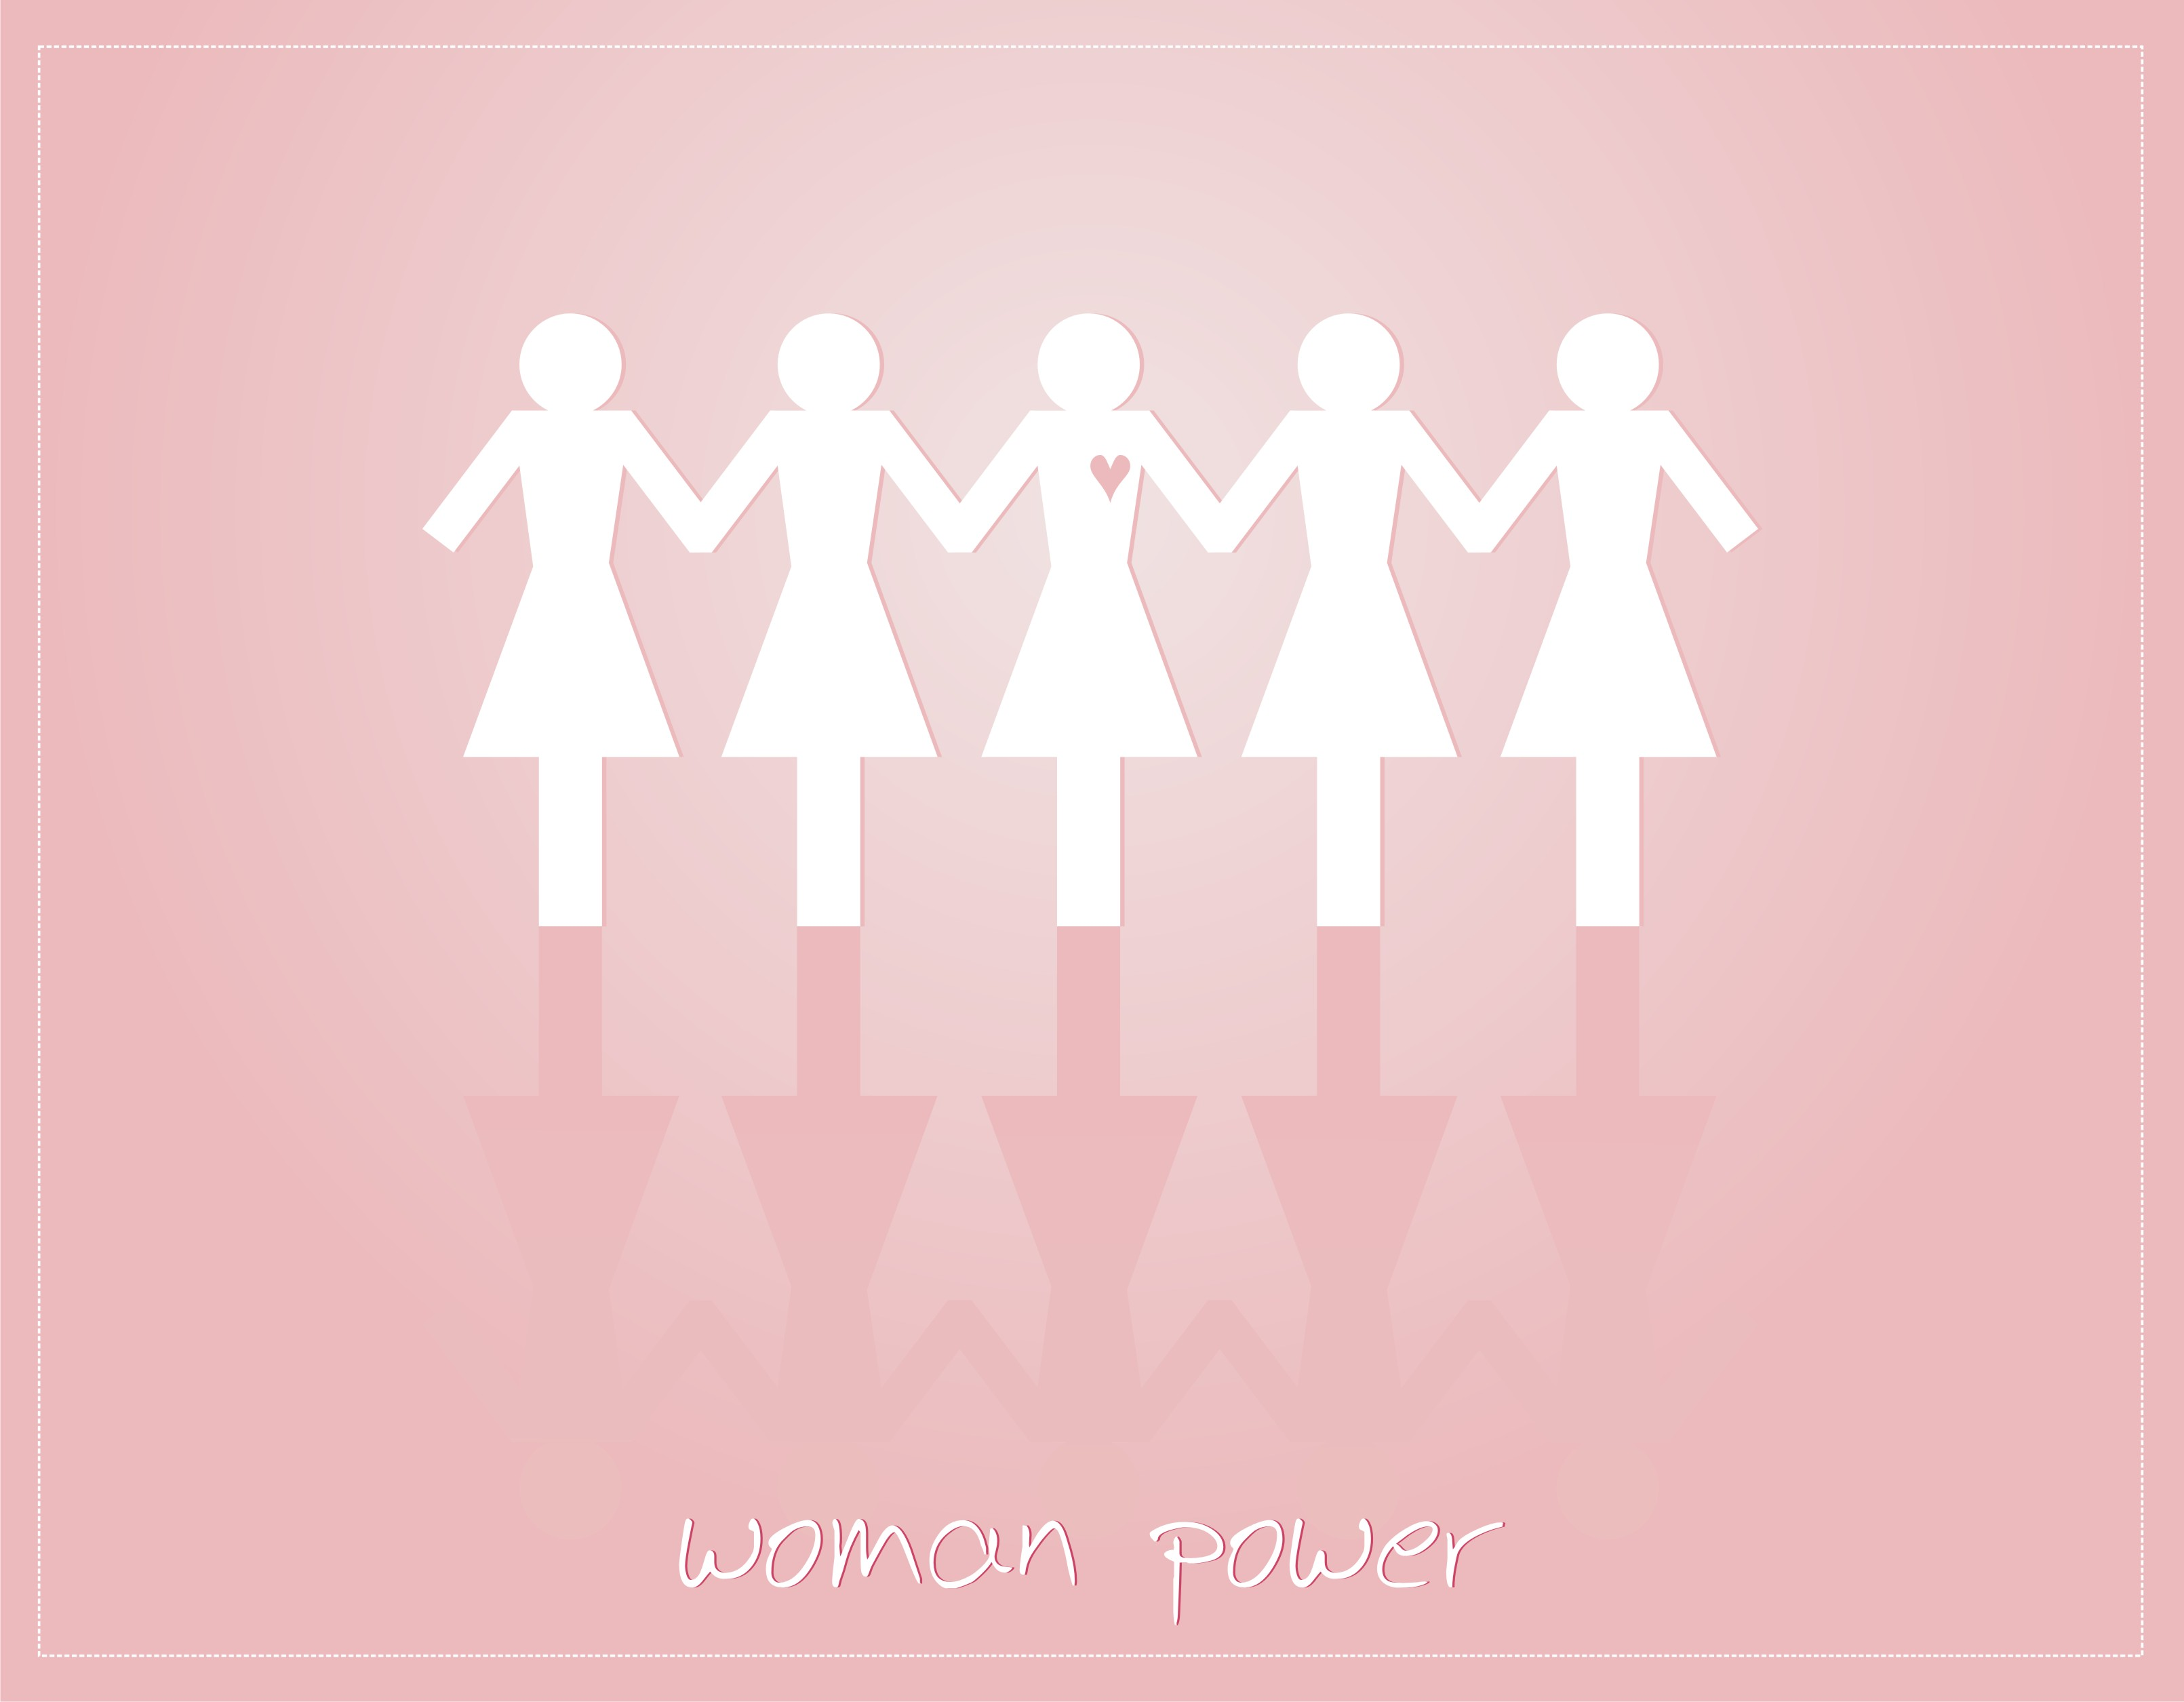 empowerwomennow com launches women entrepreneurs resource w power women entrepreneurs networkingw power lies in the ability for women entrepreneurs to network and mentor one another to succeed in business